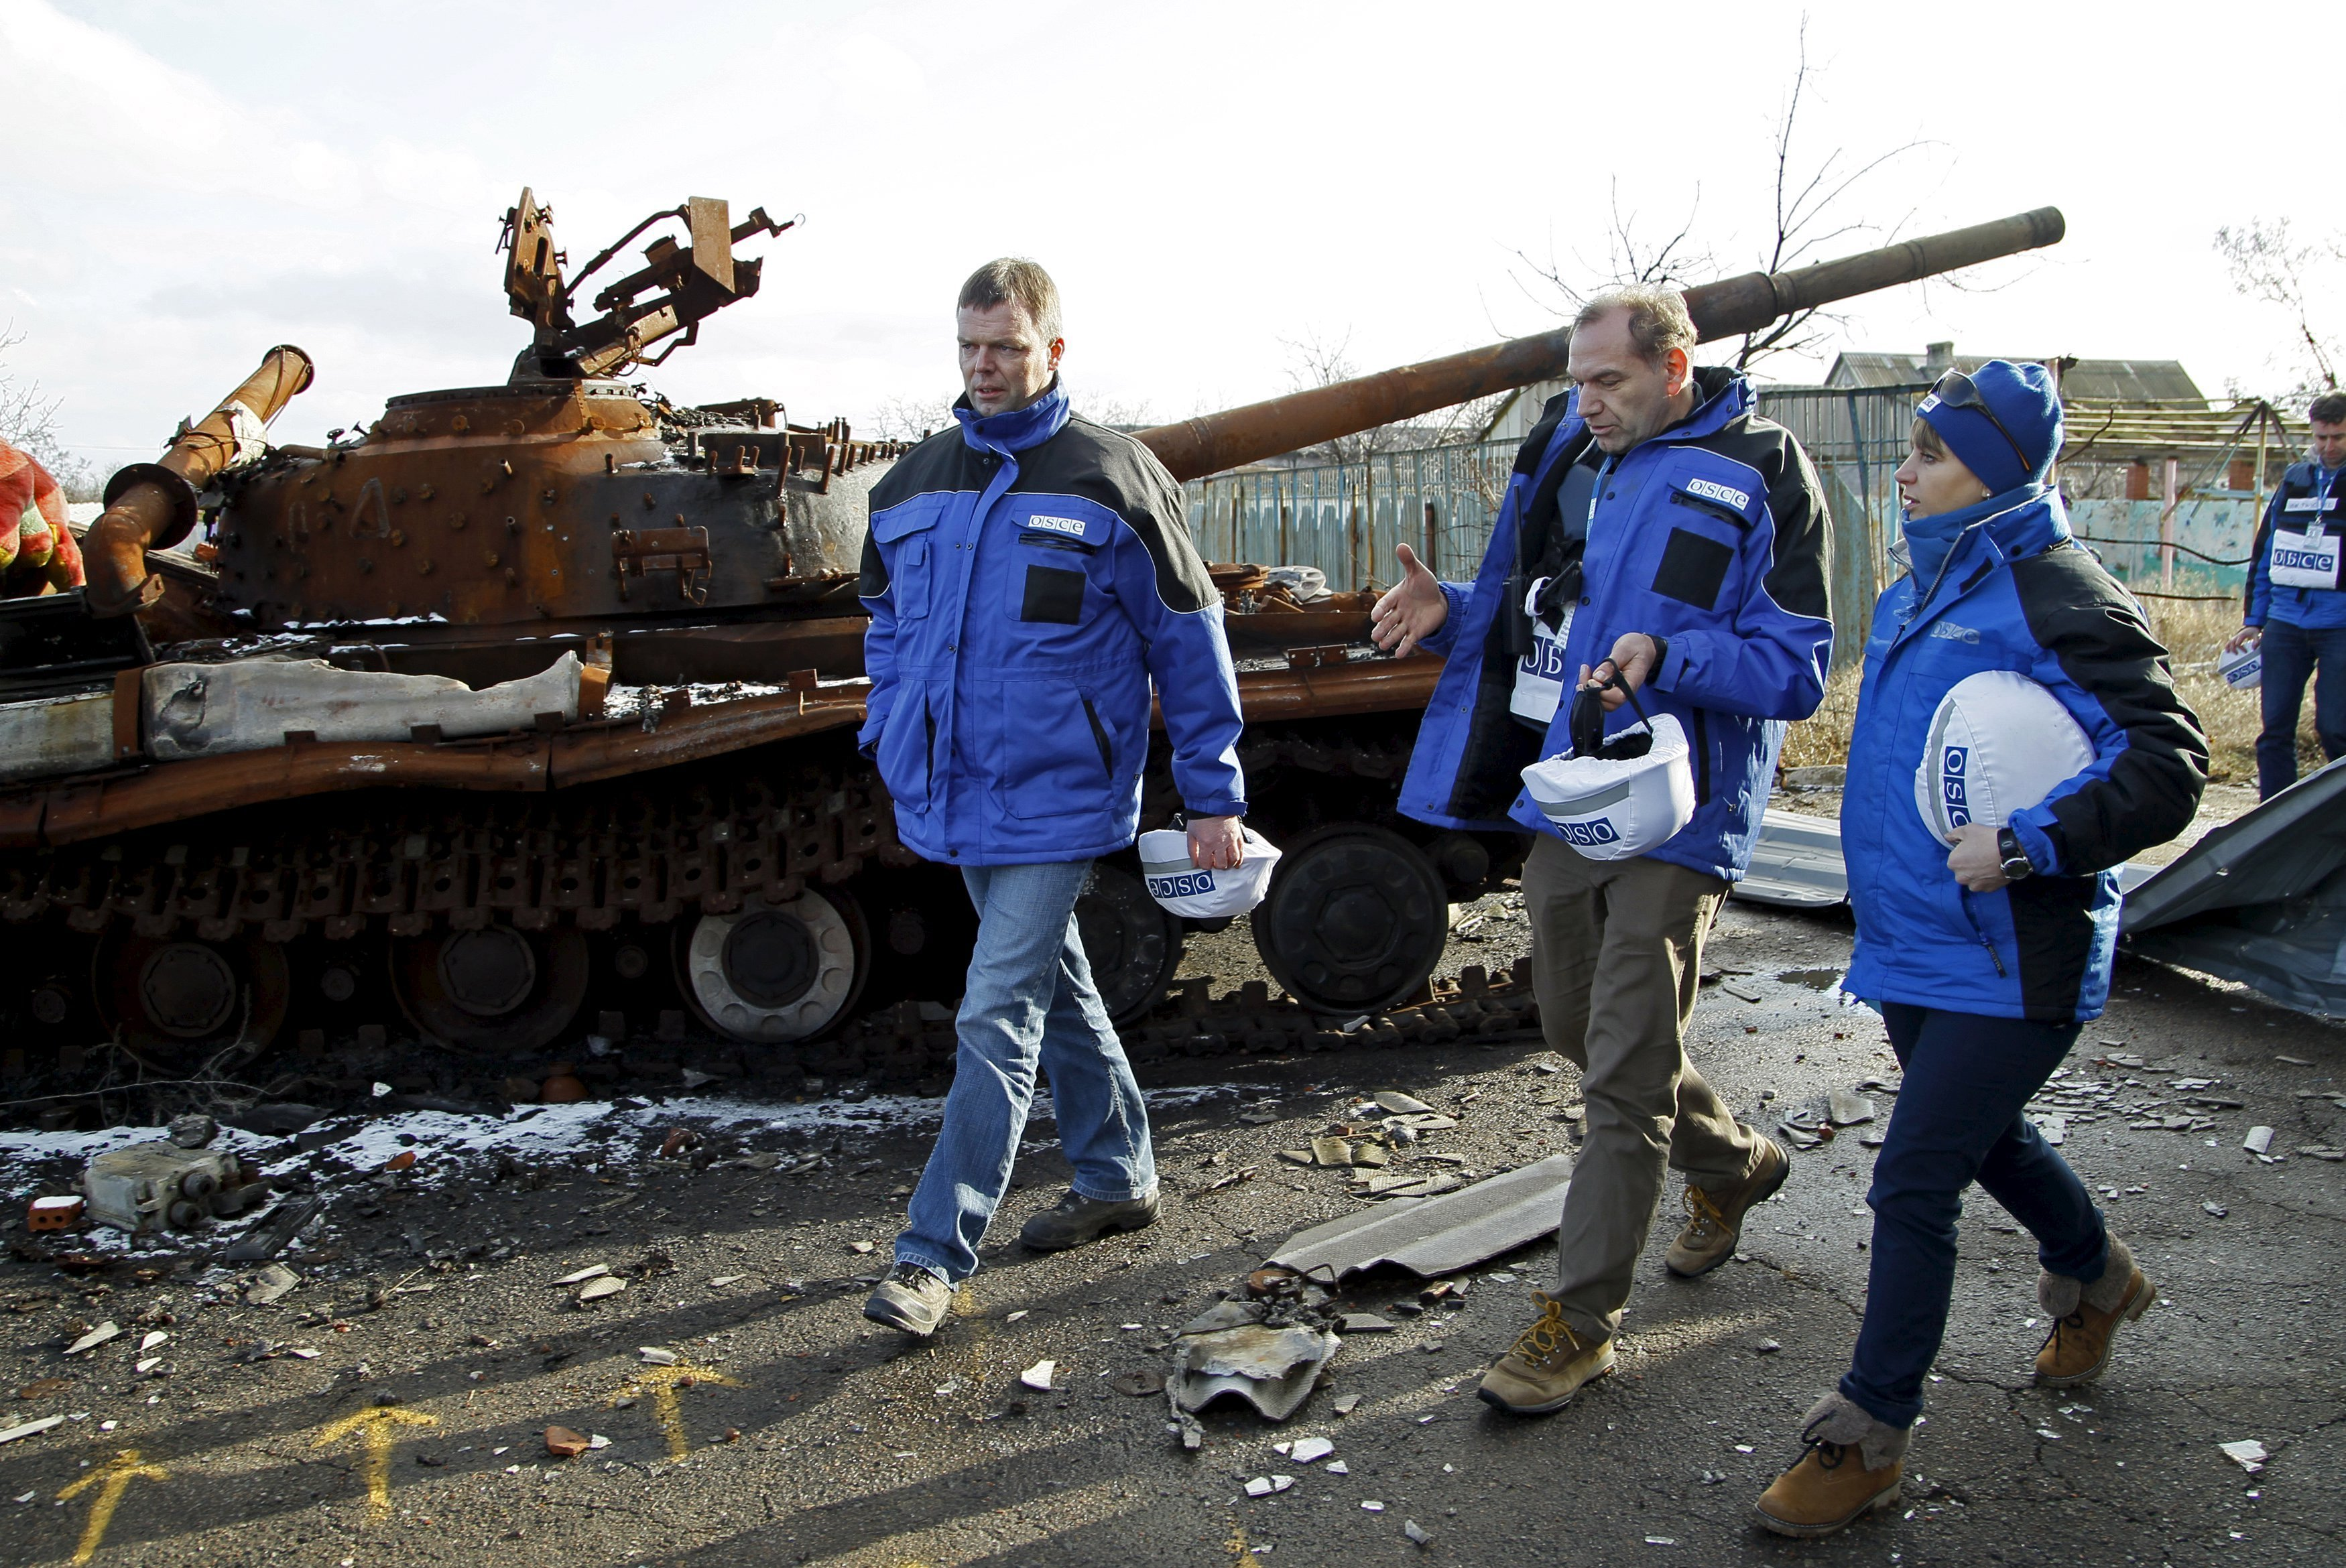 Deputy Chief of the OSCE's Special Monitoring Mission to Ukraine Alexander Hug (L), with members of the mission, walks past a burnt tank as he inspects an area between DPR forces and Ukrainian government troops in the village of Kominternove north-east of the port city of Mariupol, Ukraine, January 15, 2016